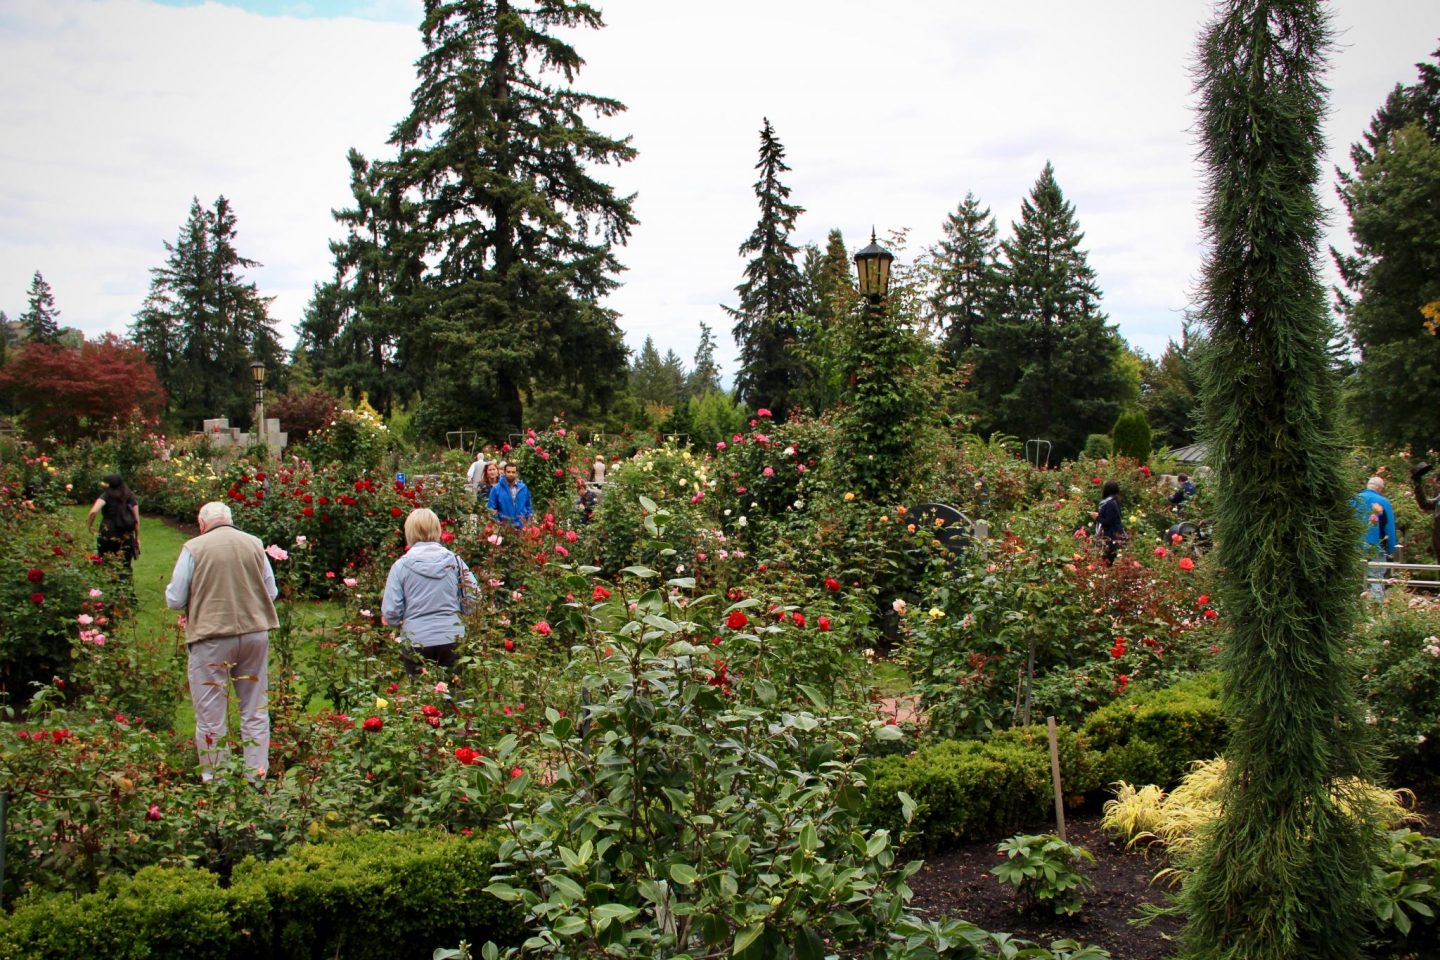 International Rose Garden Portland, Oregon - The Spectacular Adventurer